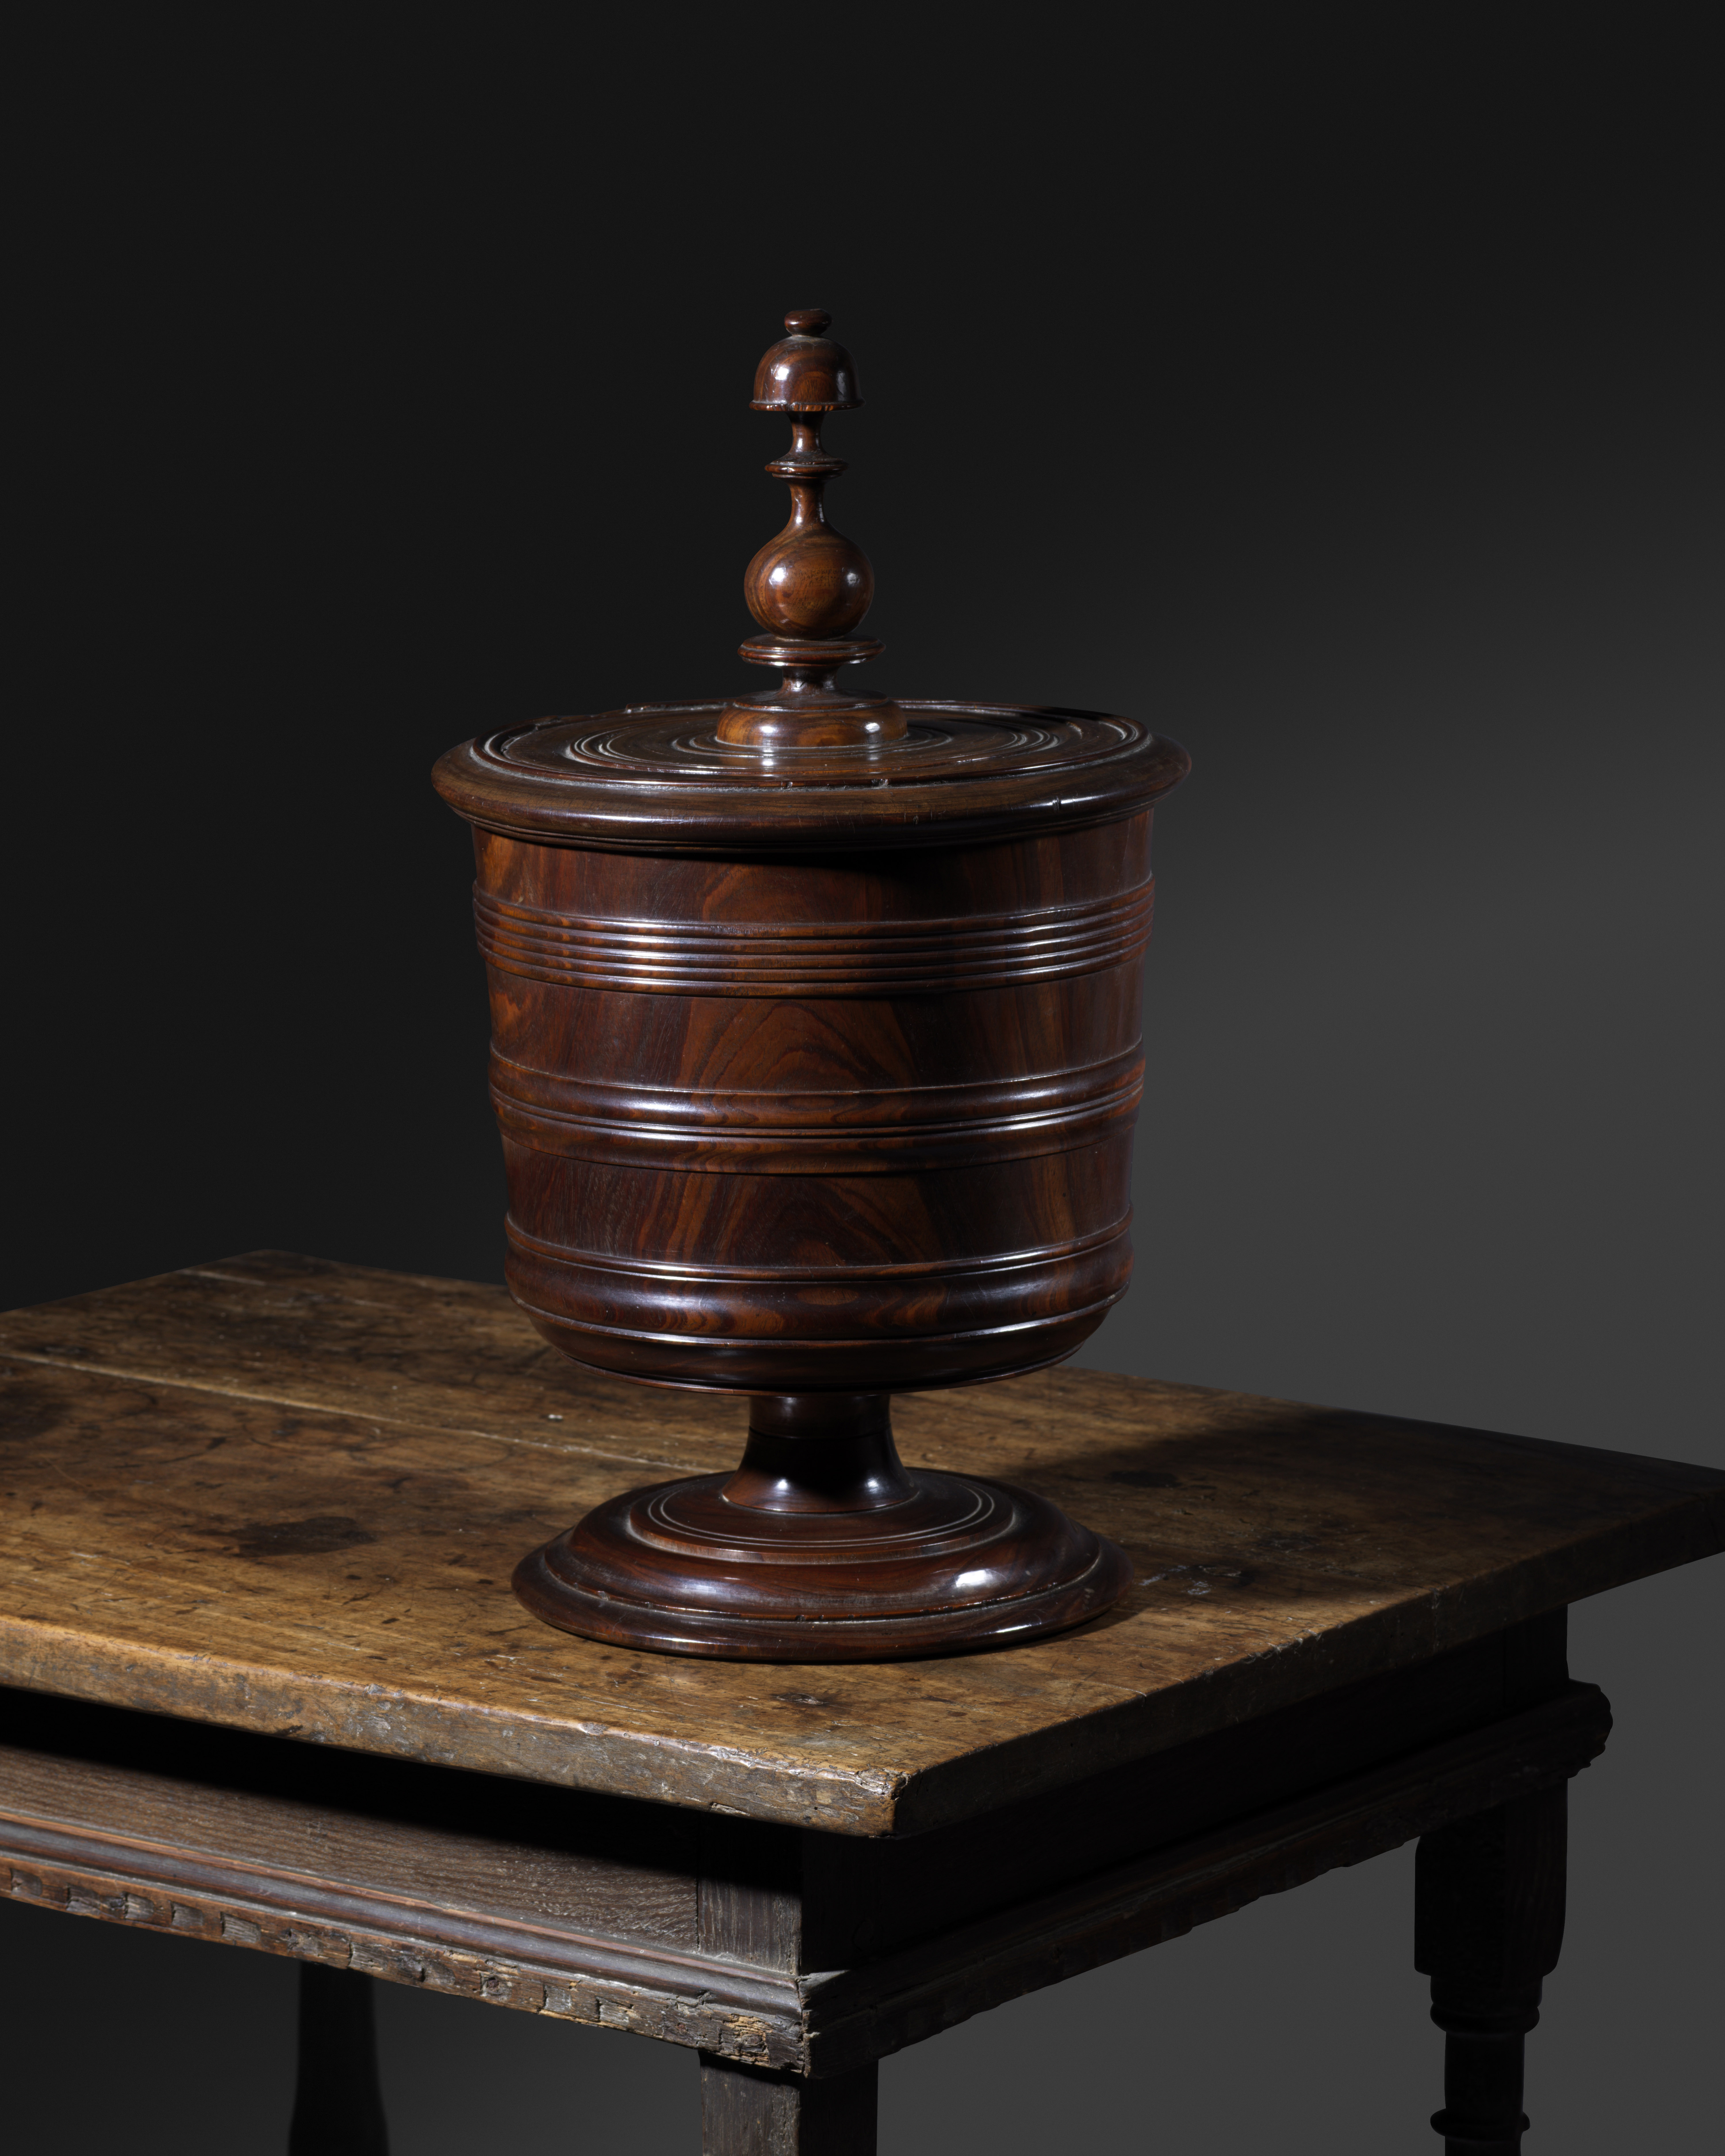 A FINE CHARLES II LIGNUM VITAE WASSAIL BOWL AND COVER C.1660-70 the lid with a turned cup and